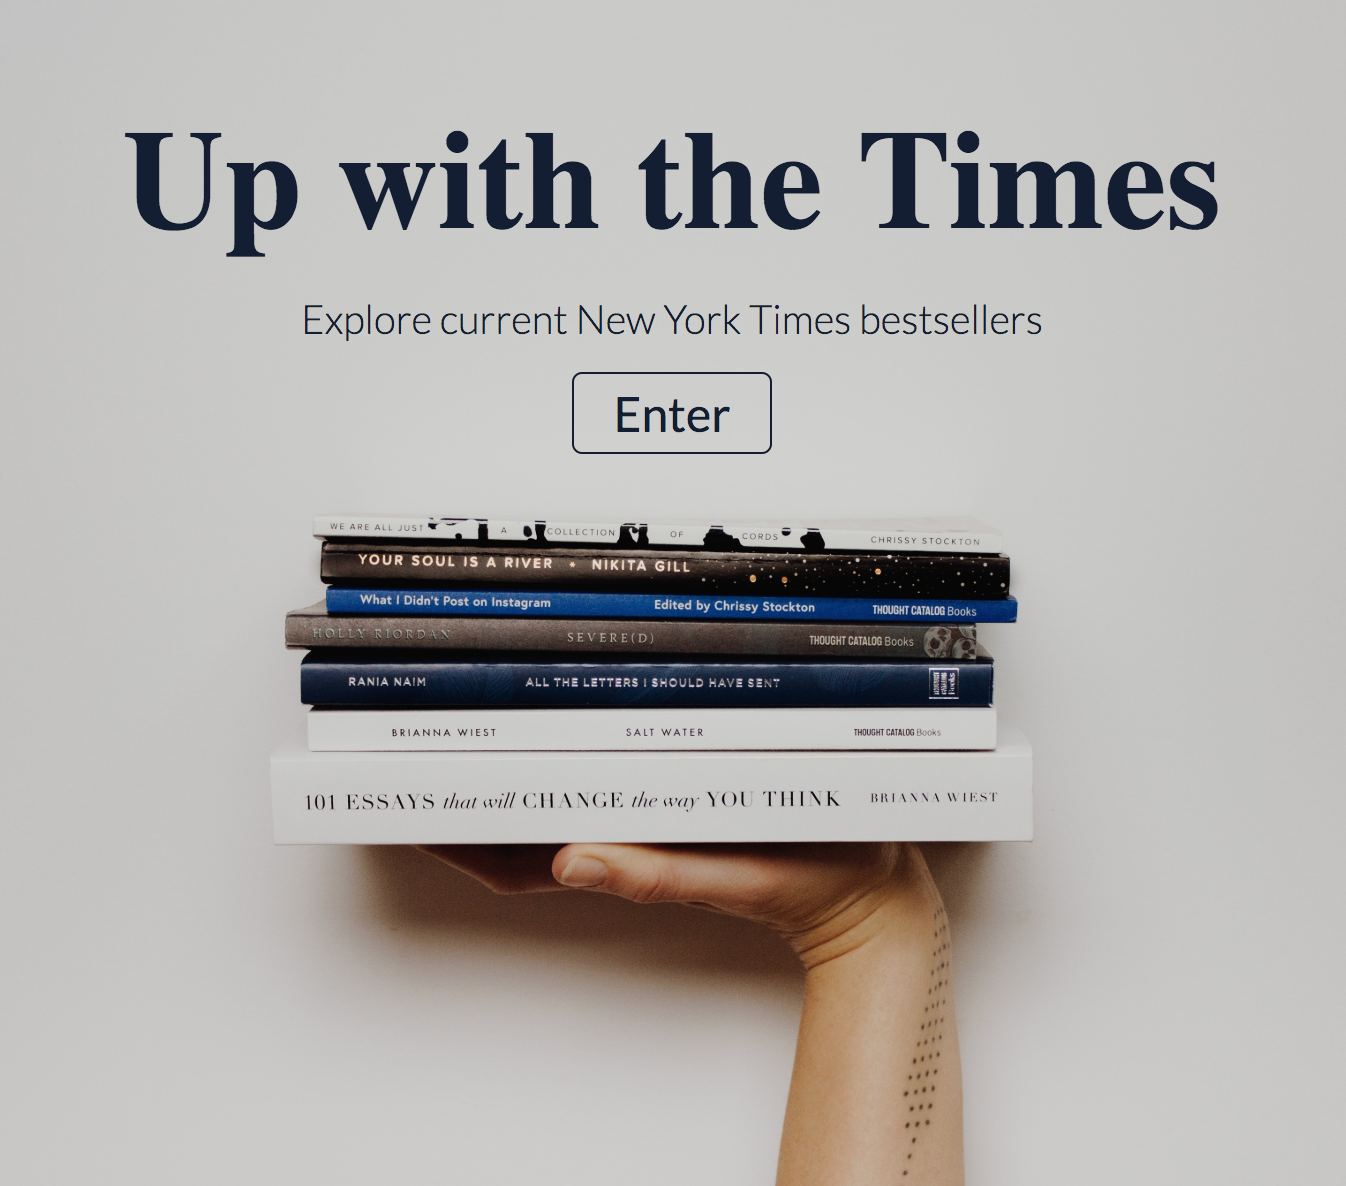 screenshot of up with the times home page, background has a womans hand holding up a pile of books with an enter button.